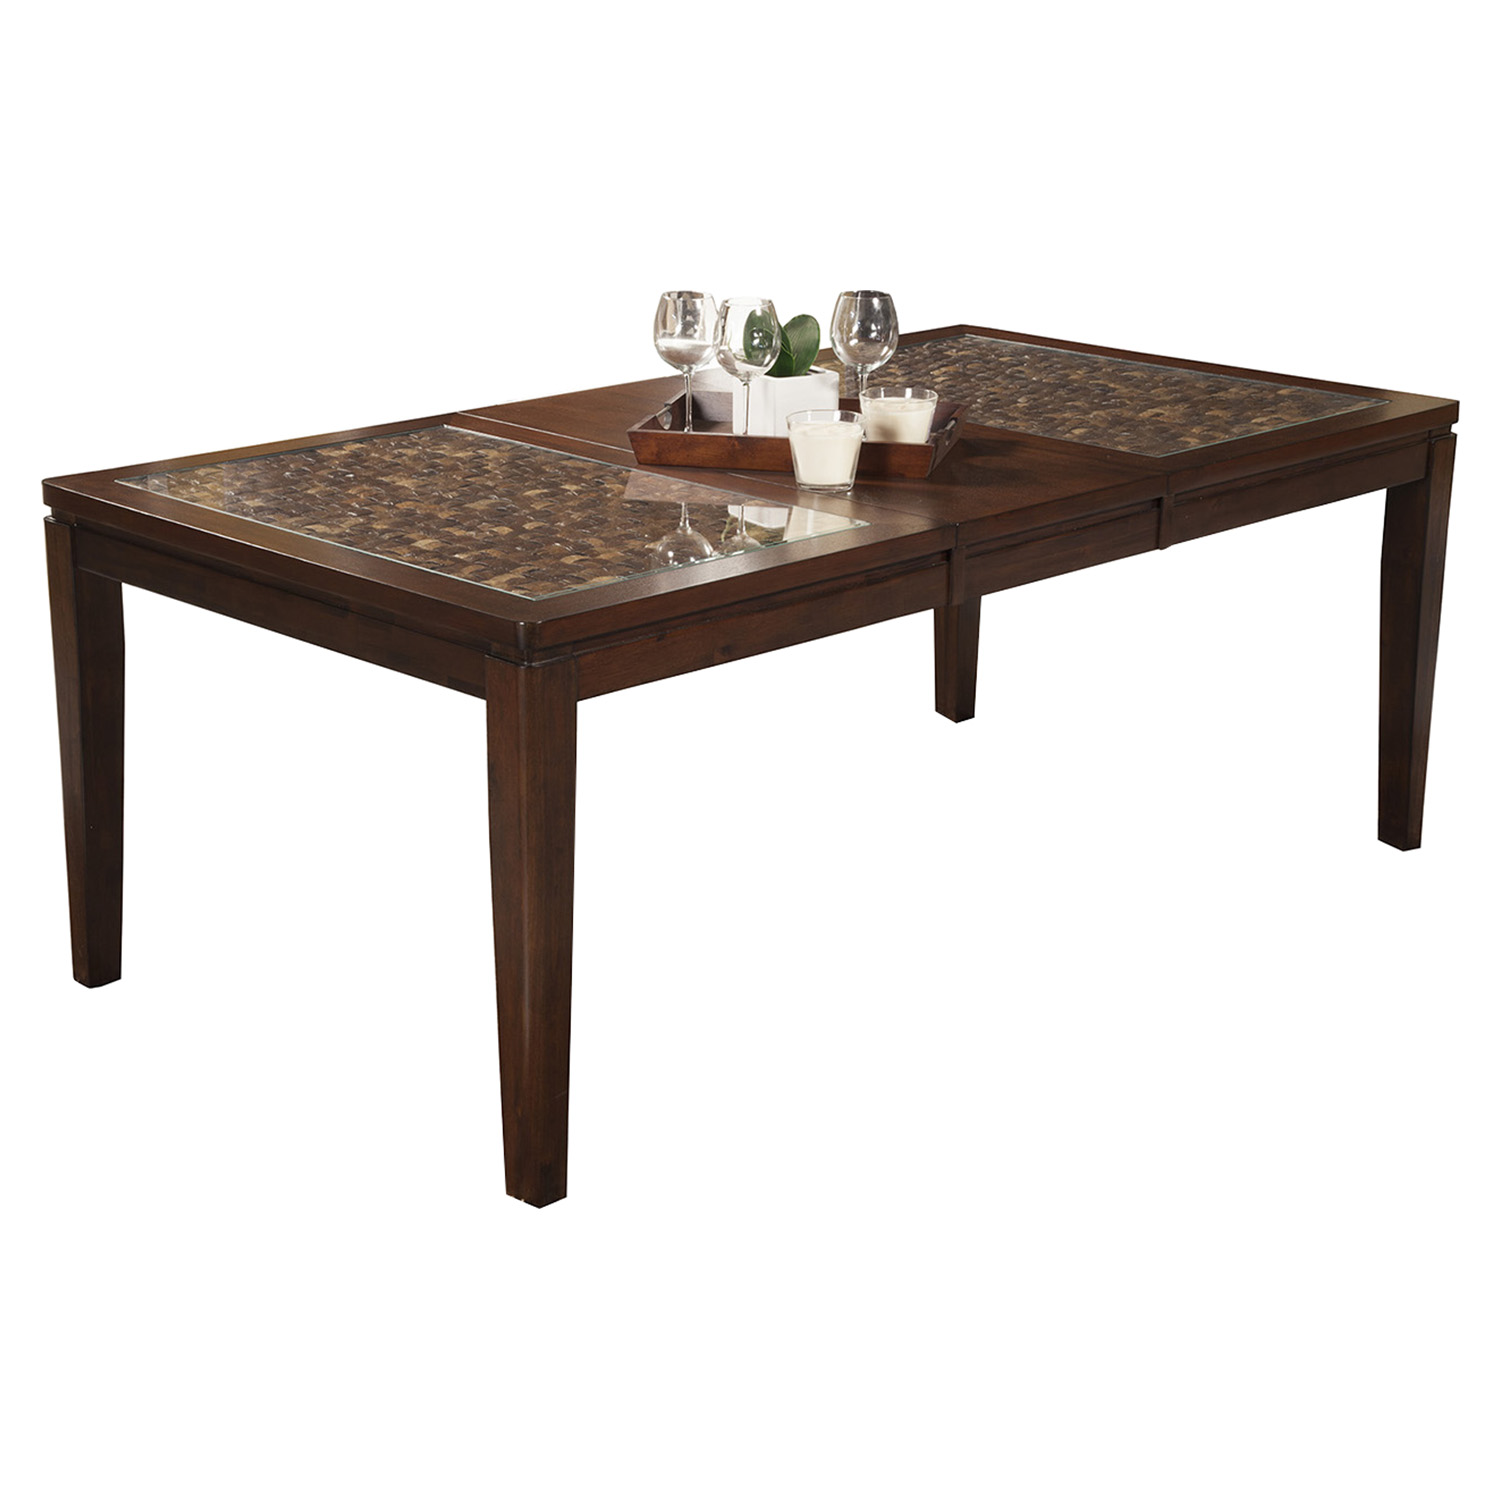 Granada Extension Dining Table - Brown Merlot, Butterfly Leaf